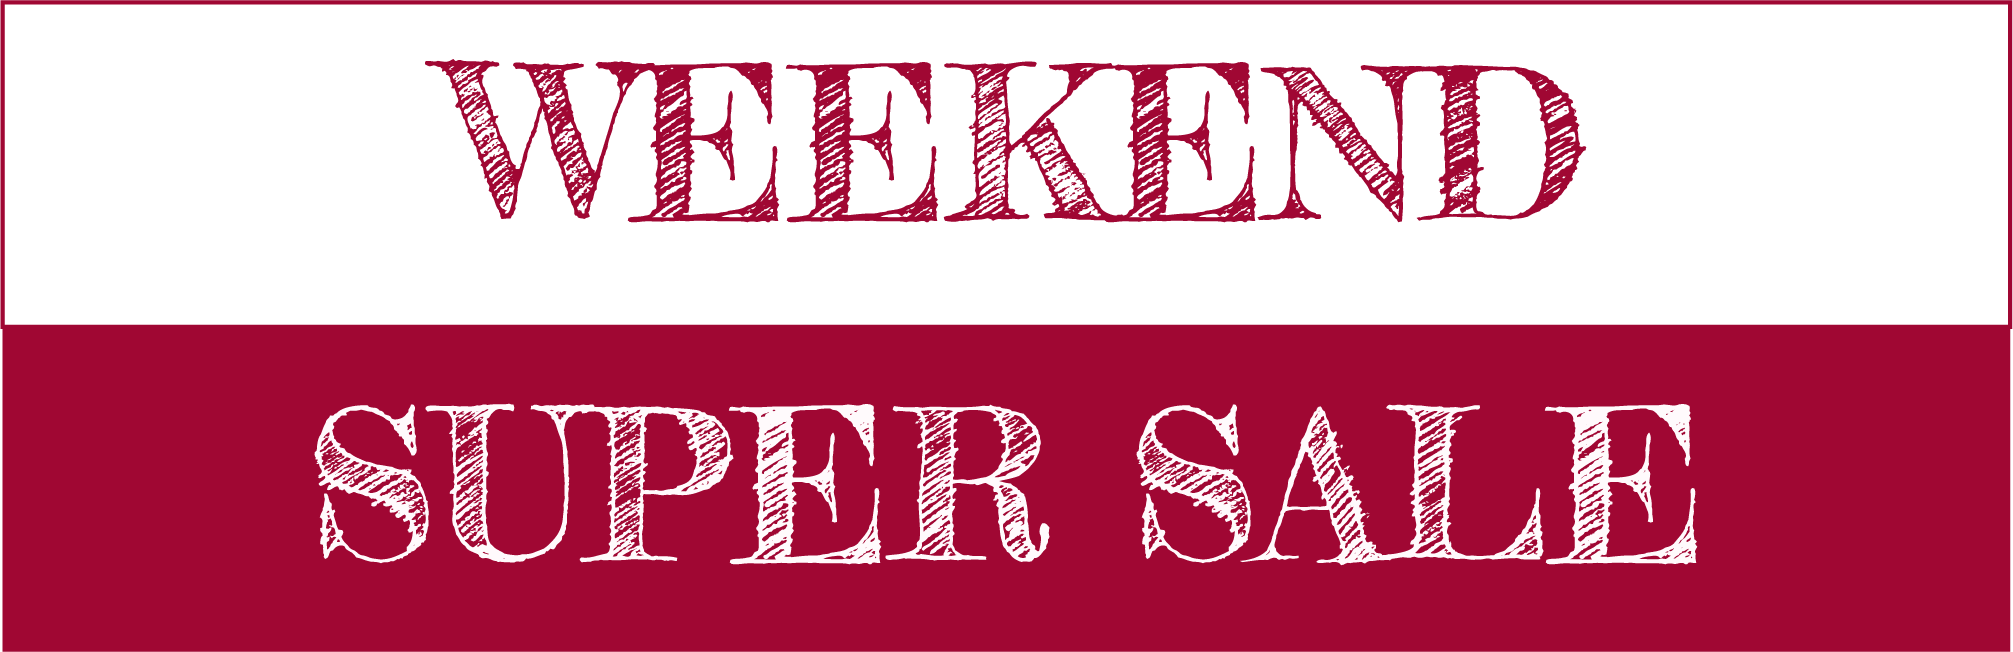 kaymanta weekend super sale